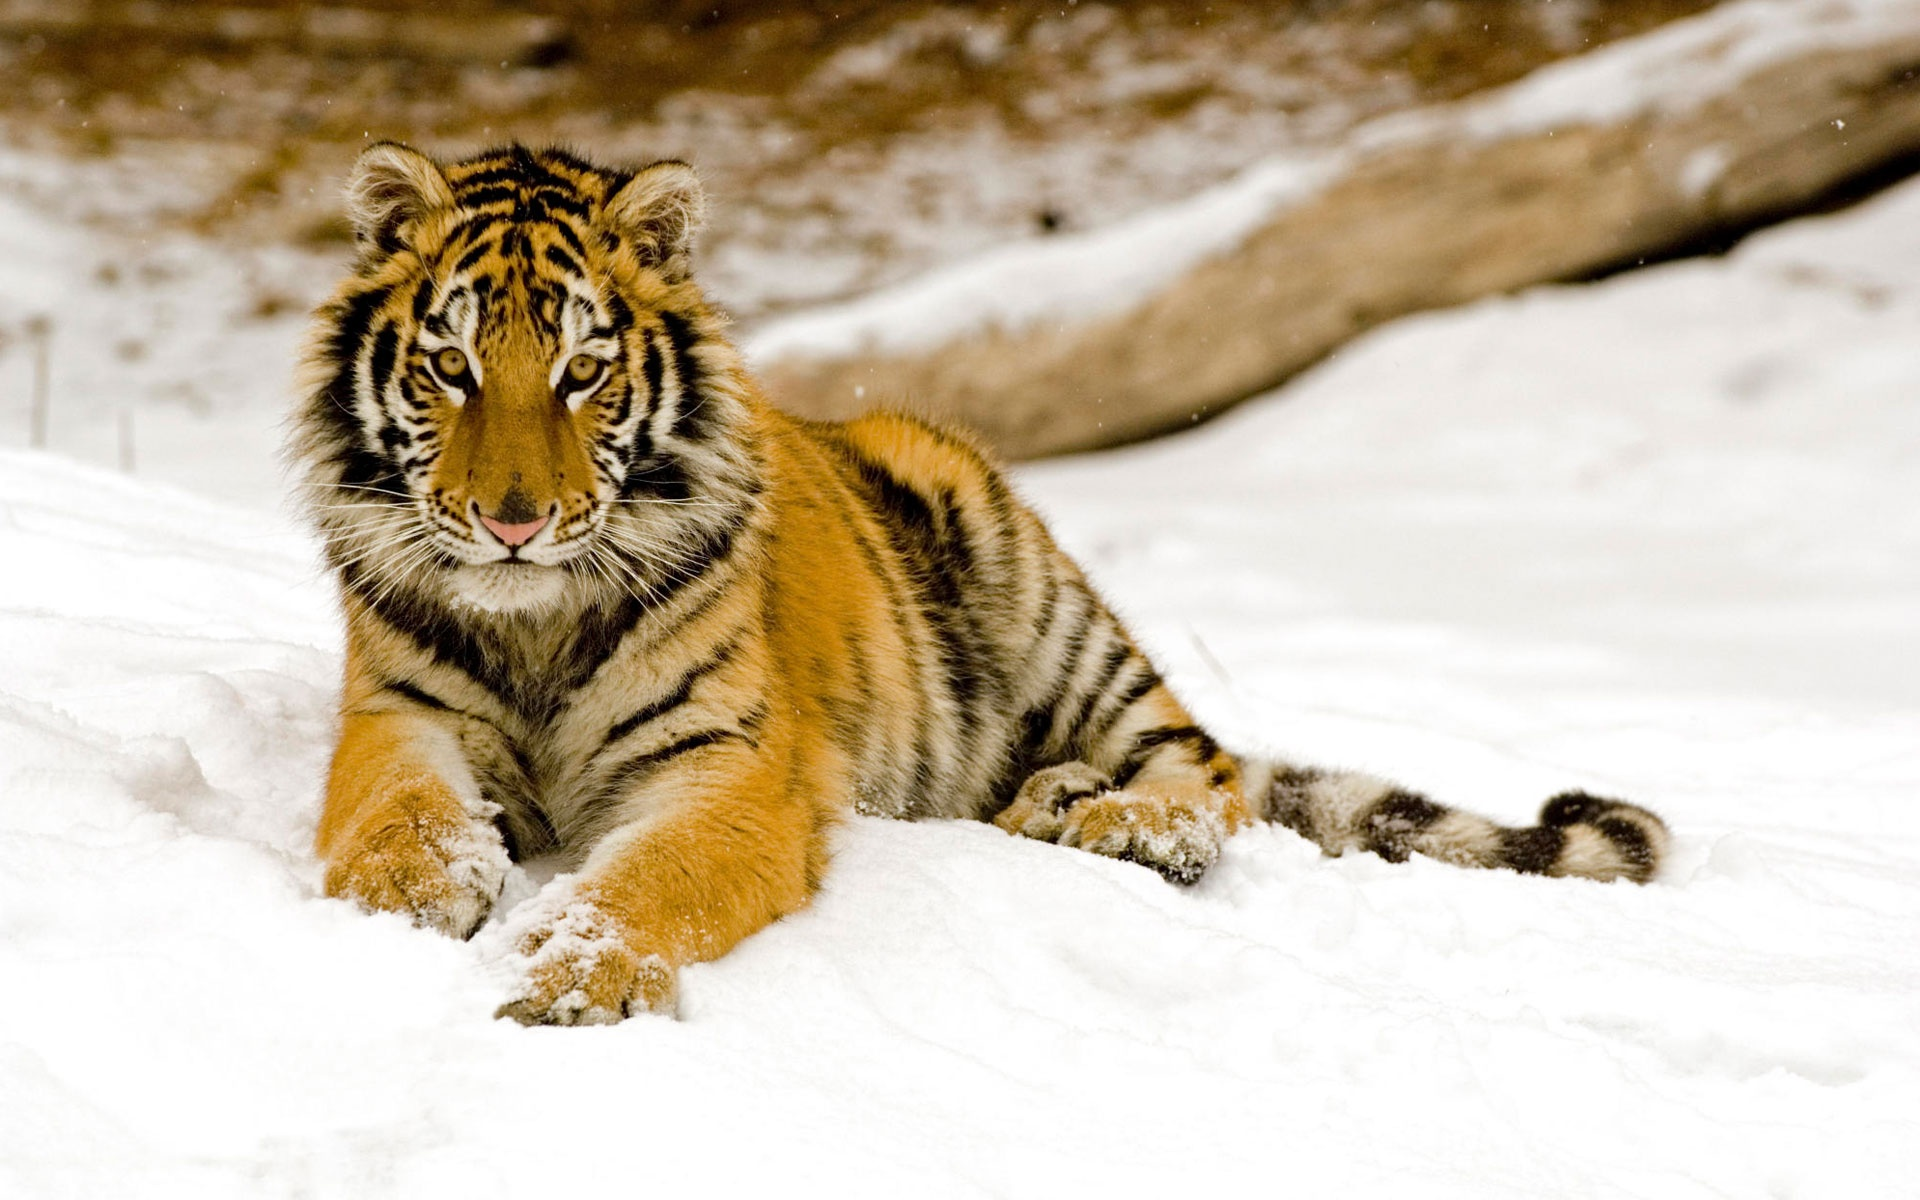 Snowy Afternoon Tiger Wallpapers In Jpg Format For Free Download